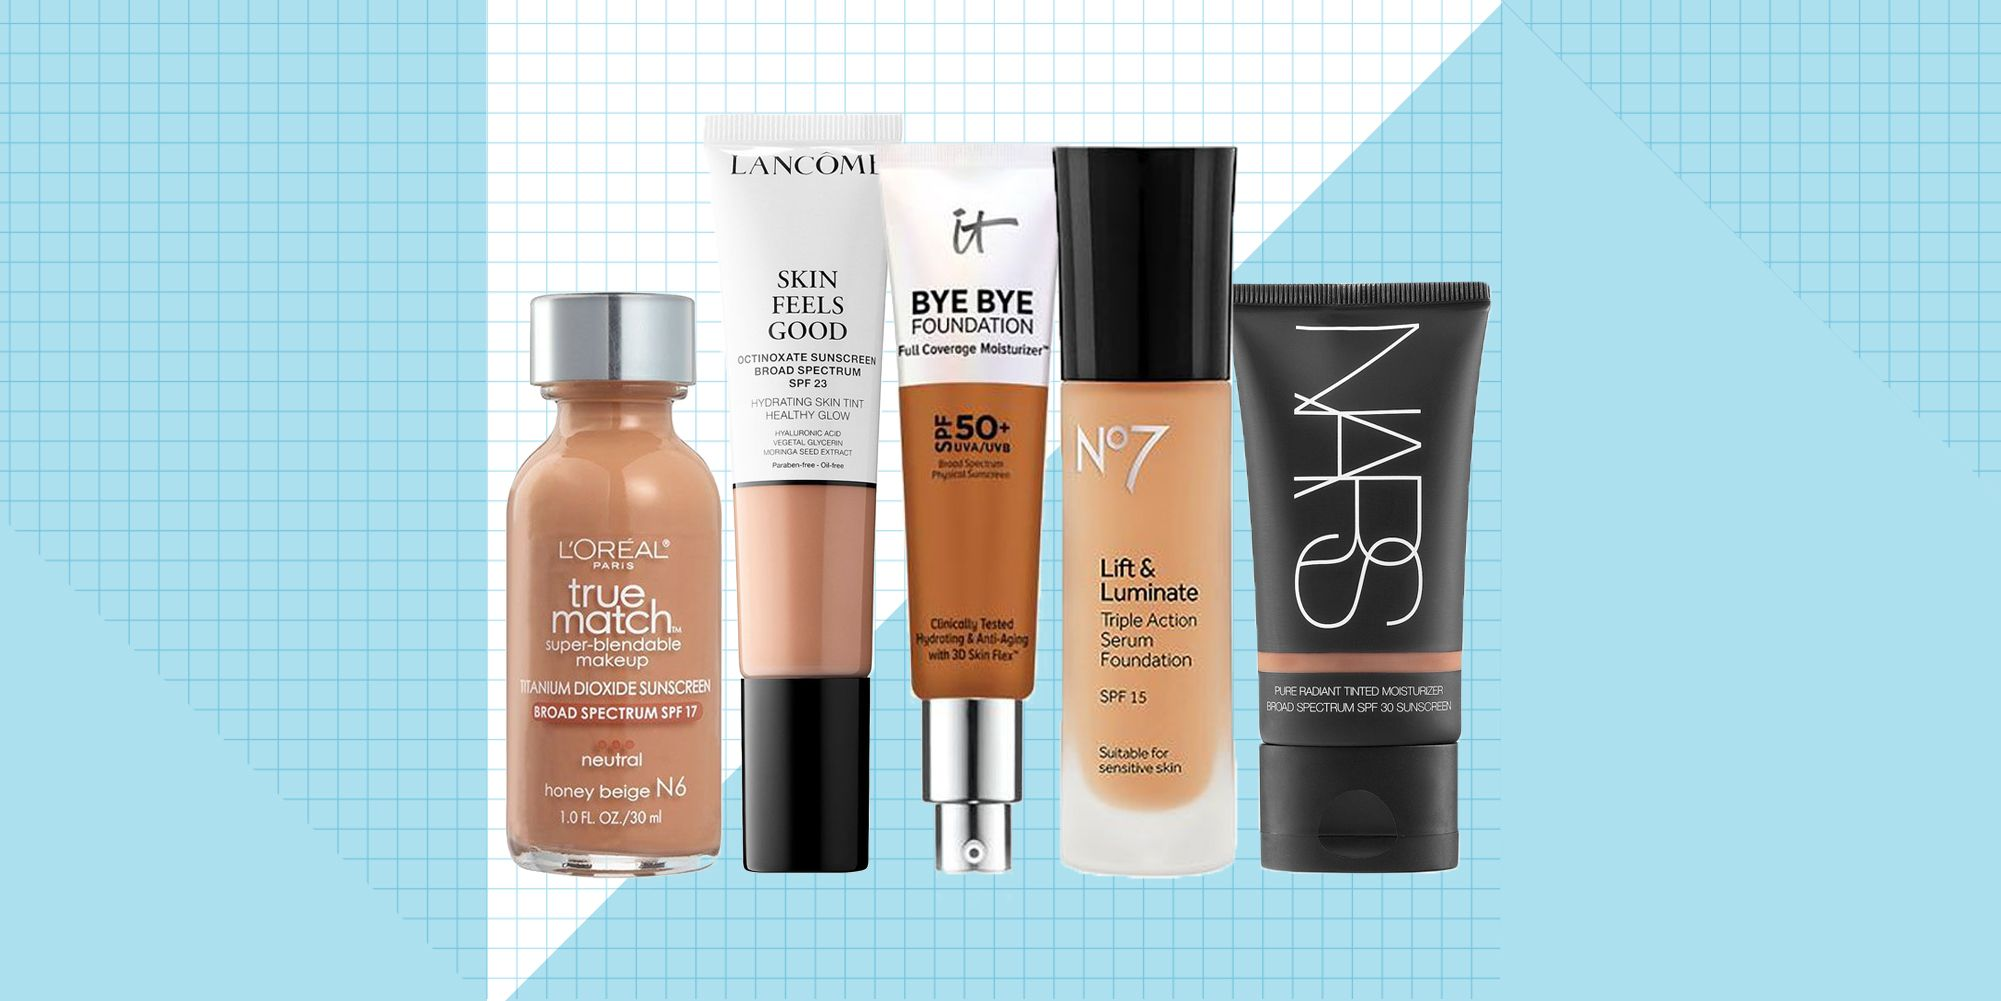 11 Best Foundations for Mature and Aging Skin 11, According to